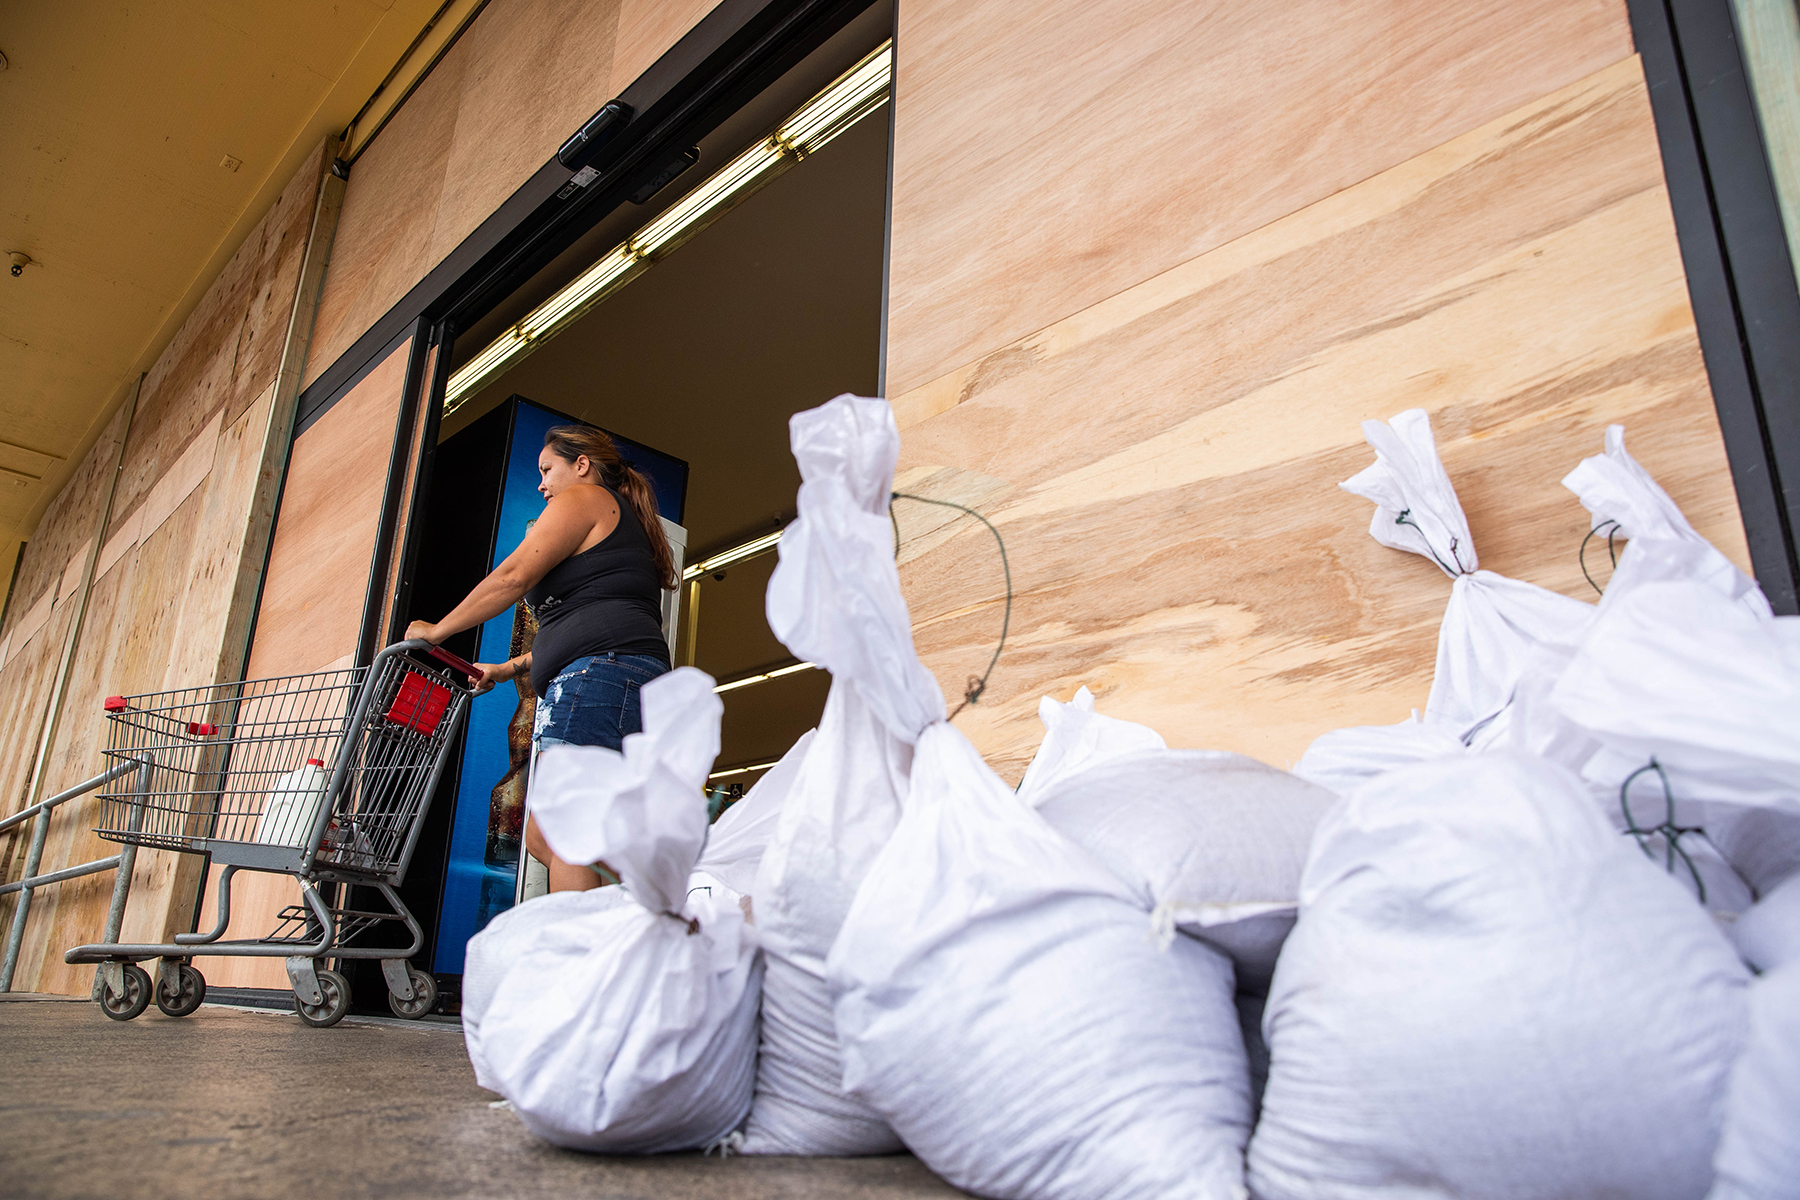 <p>As the slow-moving storm approached, some businesses and residents boarded up their windows or put out sandbags. Longs Drugs in Waianae did both. Photograph by Anthony Quintano/Civil Beat</p>